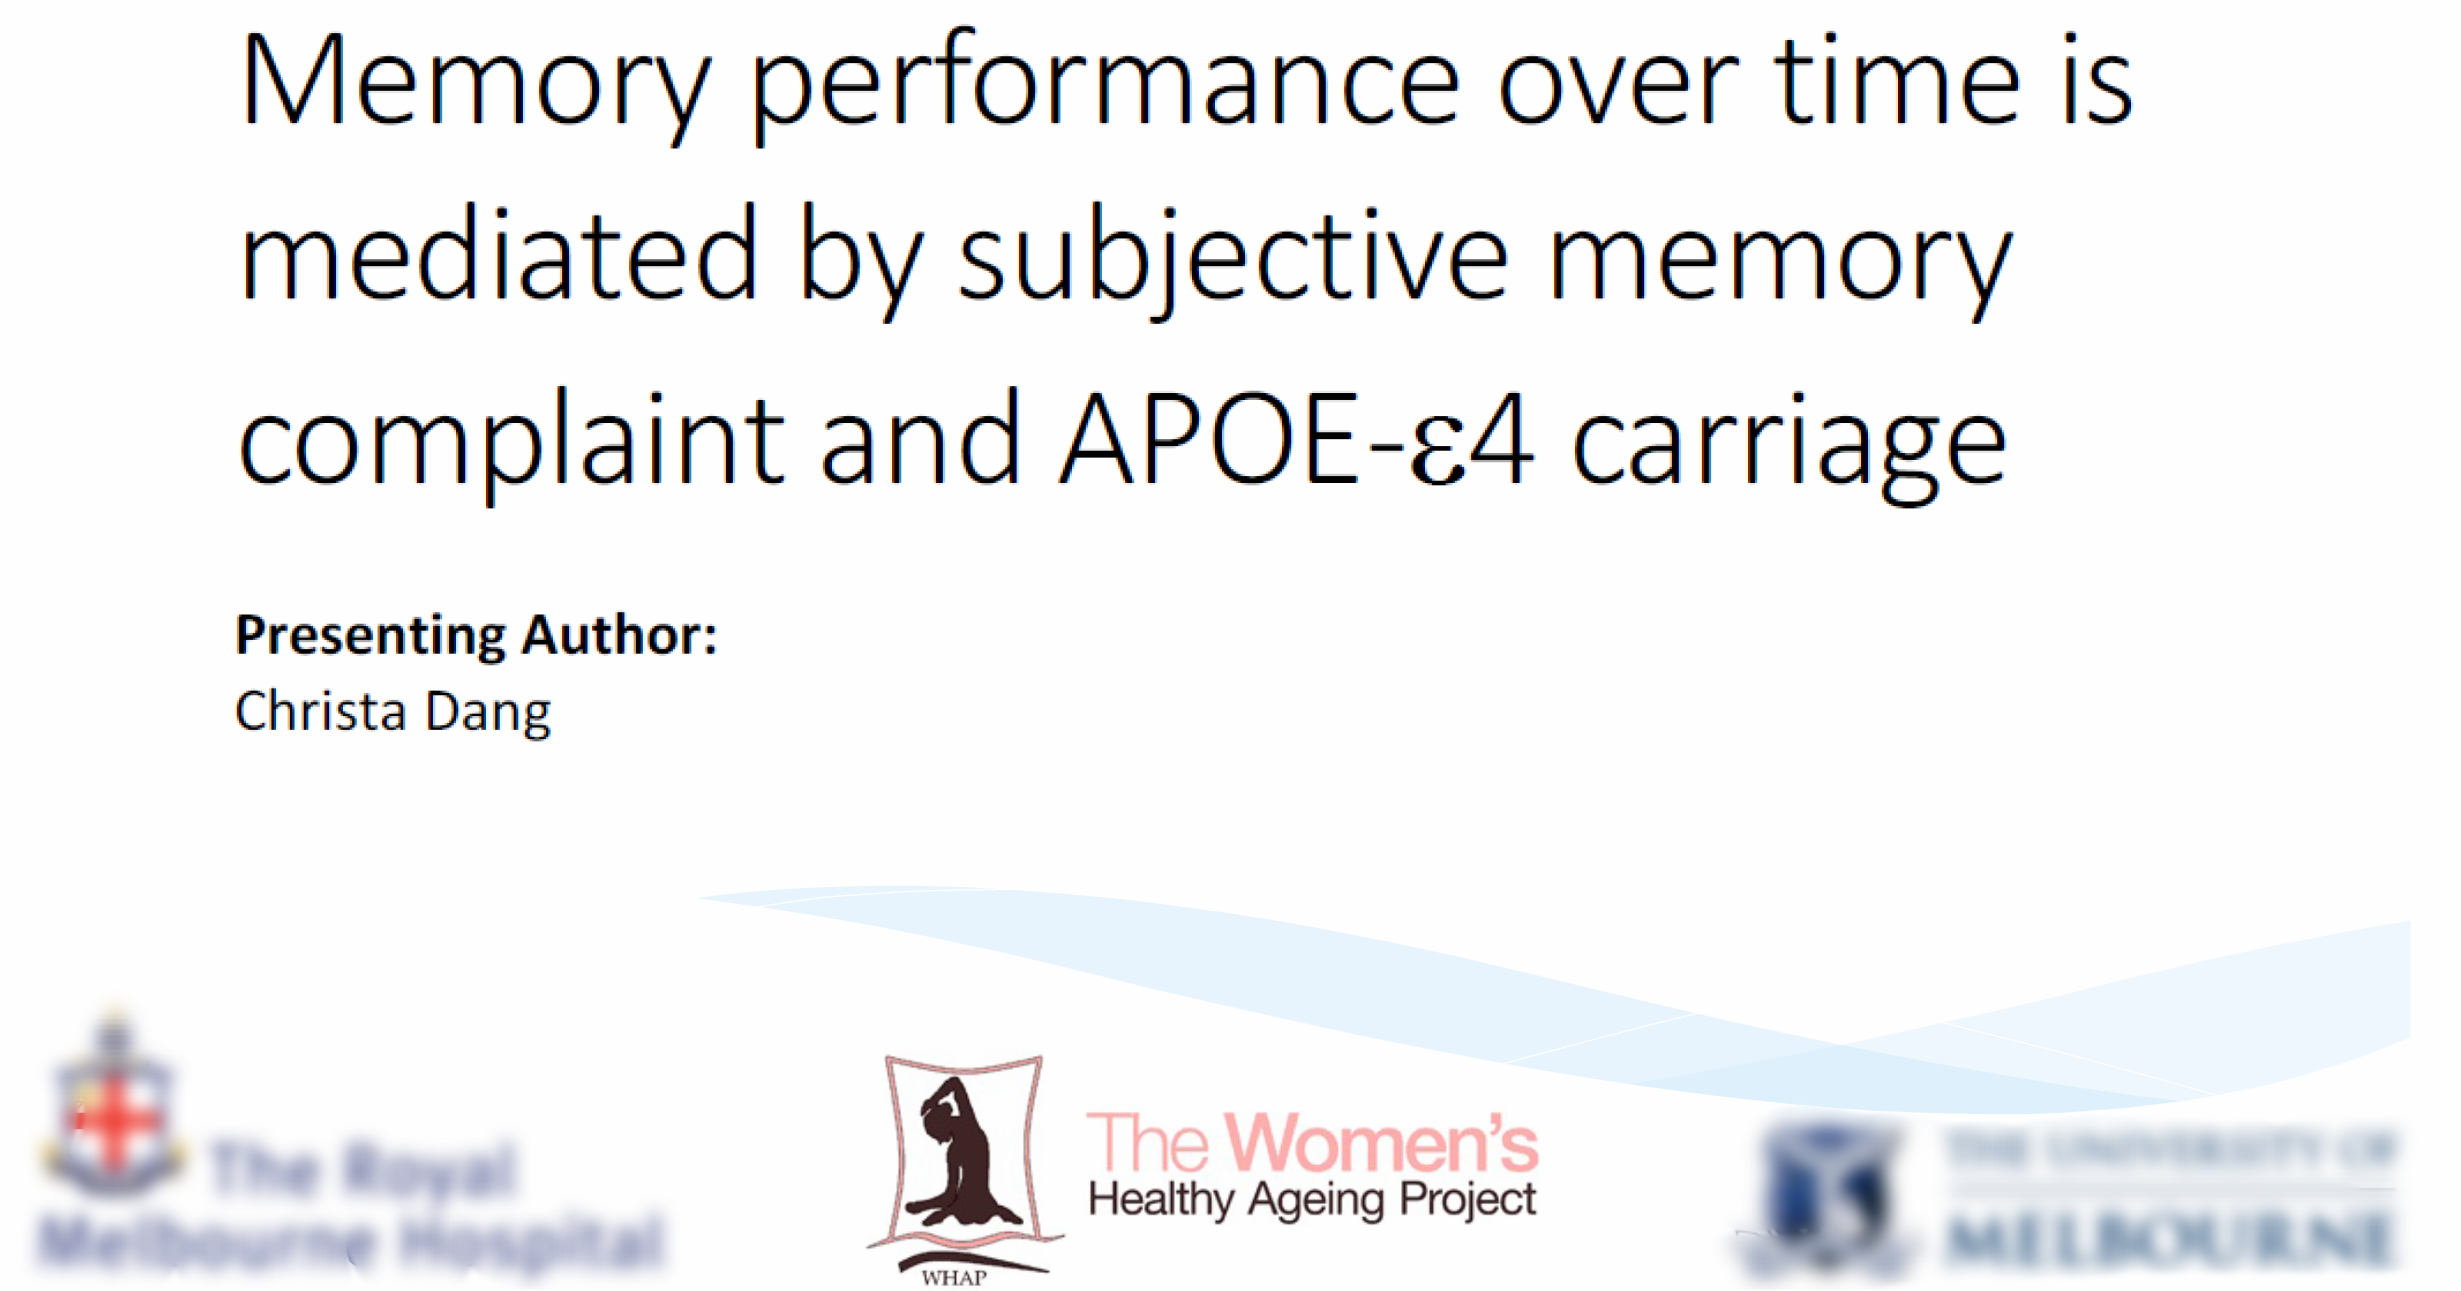 Memory performance over time is mediated by subjective memory complaint and APOE-e4 carriage  - This study hypothesizes that there is an interaction between Subjective memory complaints (SMC), APOE-e4 carriage and memory performance over time. The results indicated that memory performance over time with SMC is mediated by APOE-e4 carriage: individuals in possession of an APOE-e4 allele with reason to believe that they are experiencing memory decline may be at increased risk of developing AD; however, presence of an APOE-e4 allele alone was not associated with memory decline.Citation: Dang, C., et al. (2017).Memory performance over time is mediated by subjective memory complaint and APOE-e4 carriage. Paper presented at Alzheimer's Association International Conference, London, England, 16-20 July.